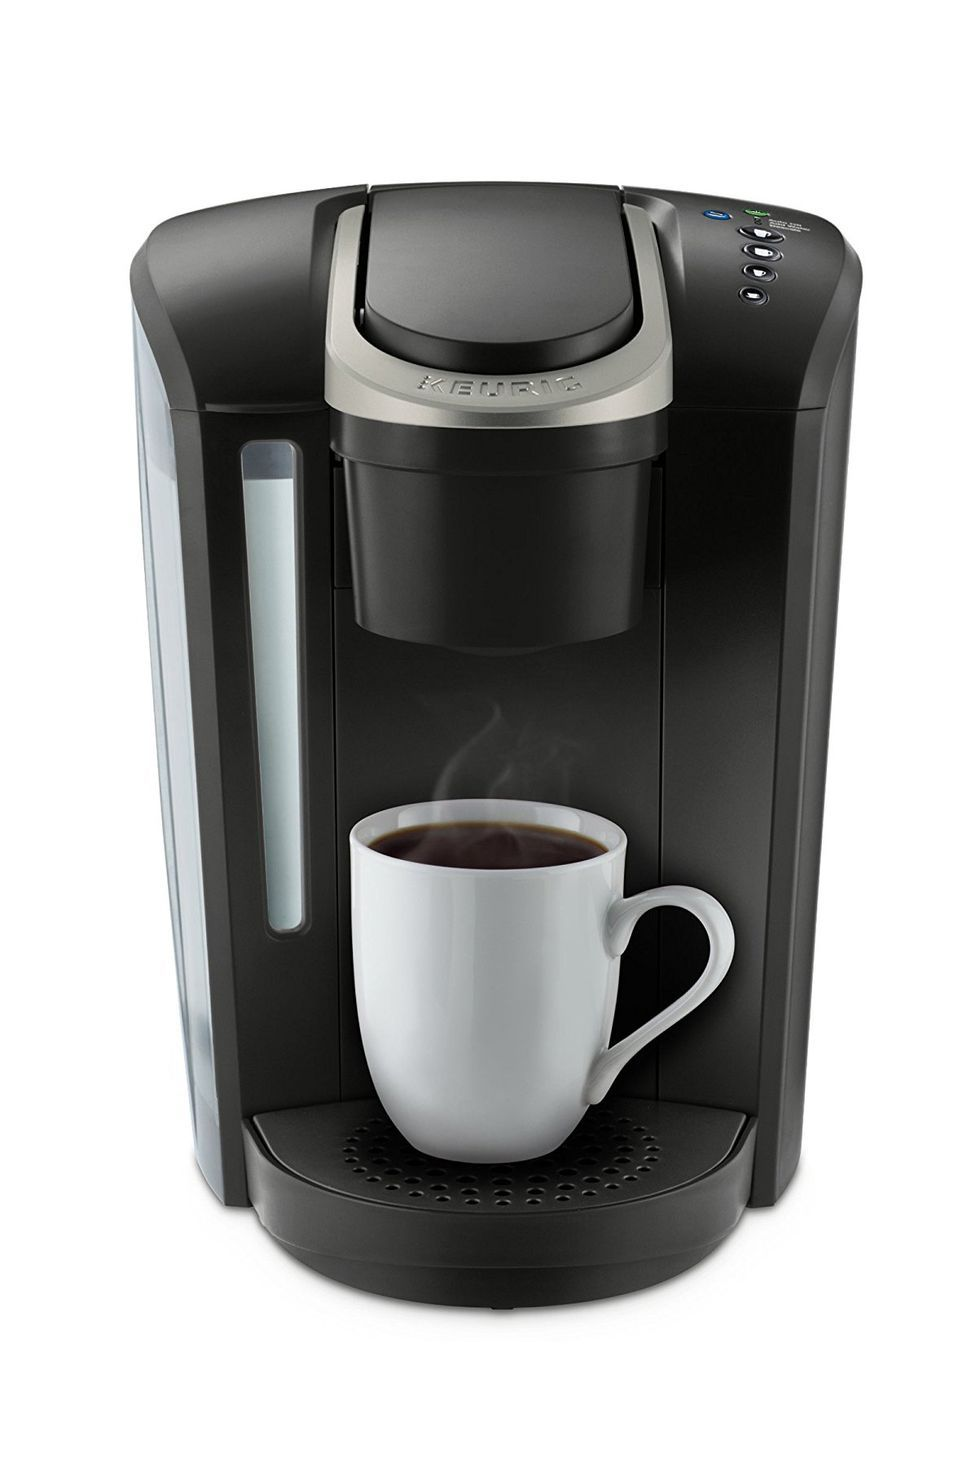 How To Properly Clean A Keurig Coffee Machine Keep